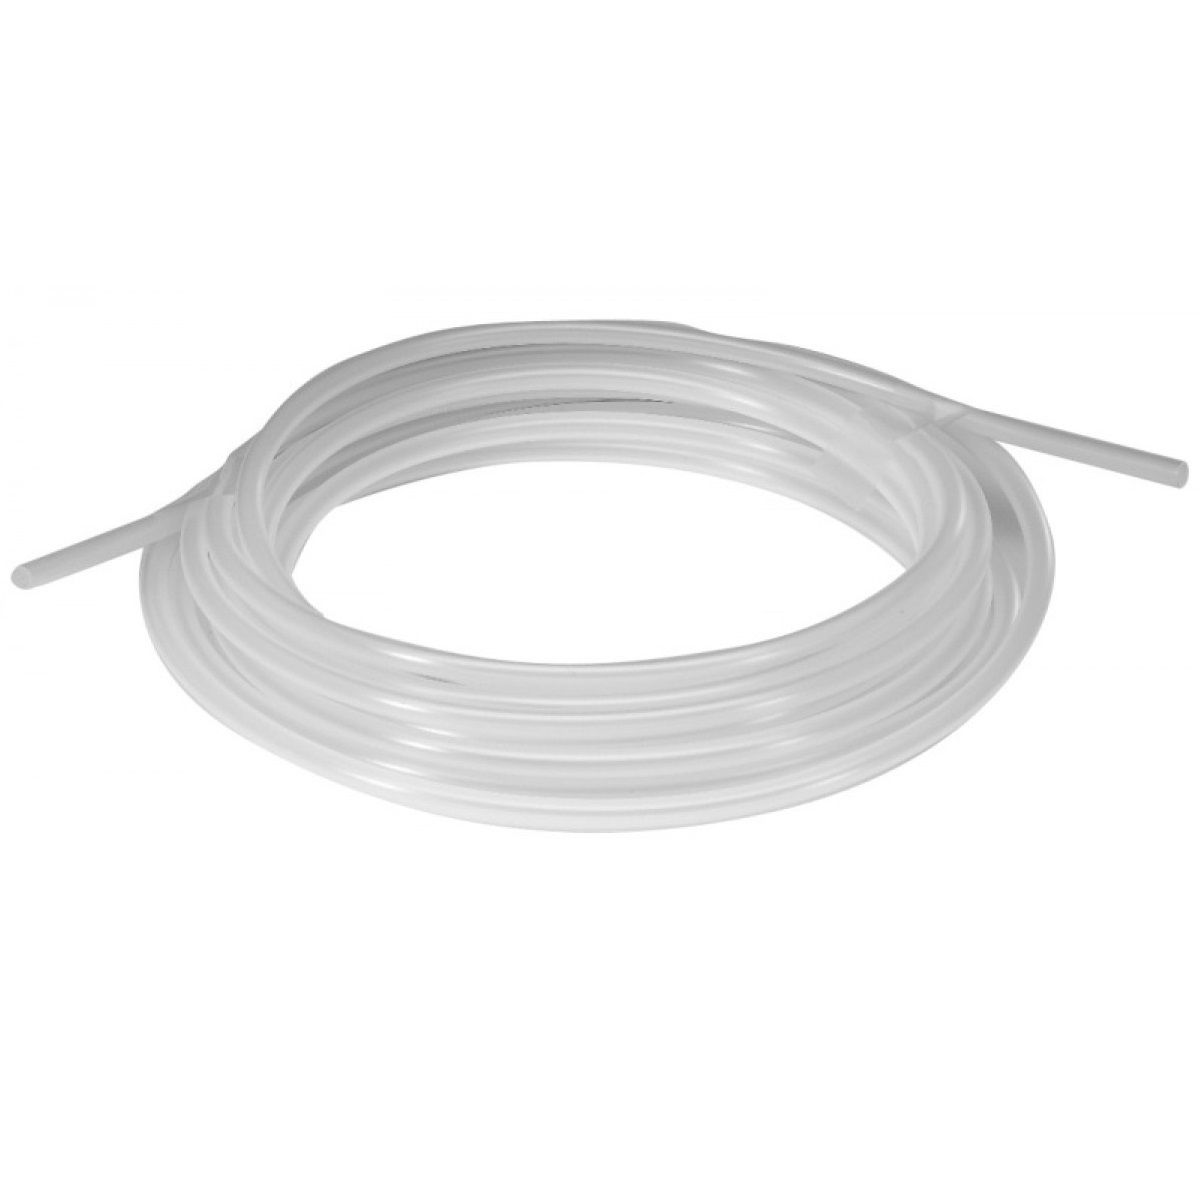 "AK4100W Stenner 1/4"" Suction/Discharge Tubing 1000 feet White"